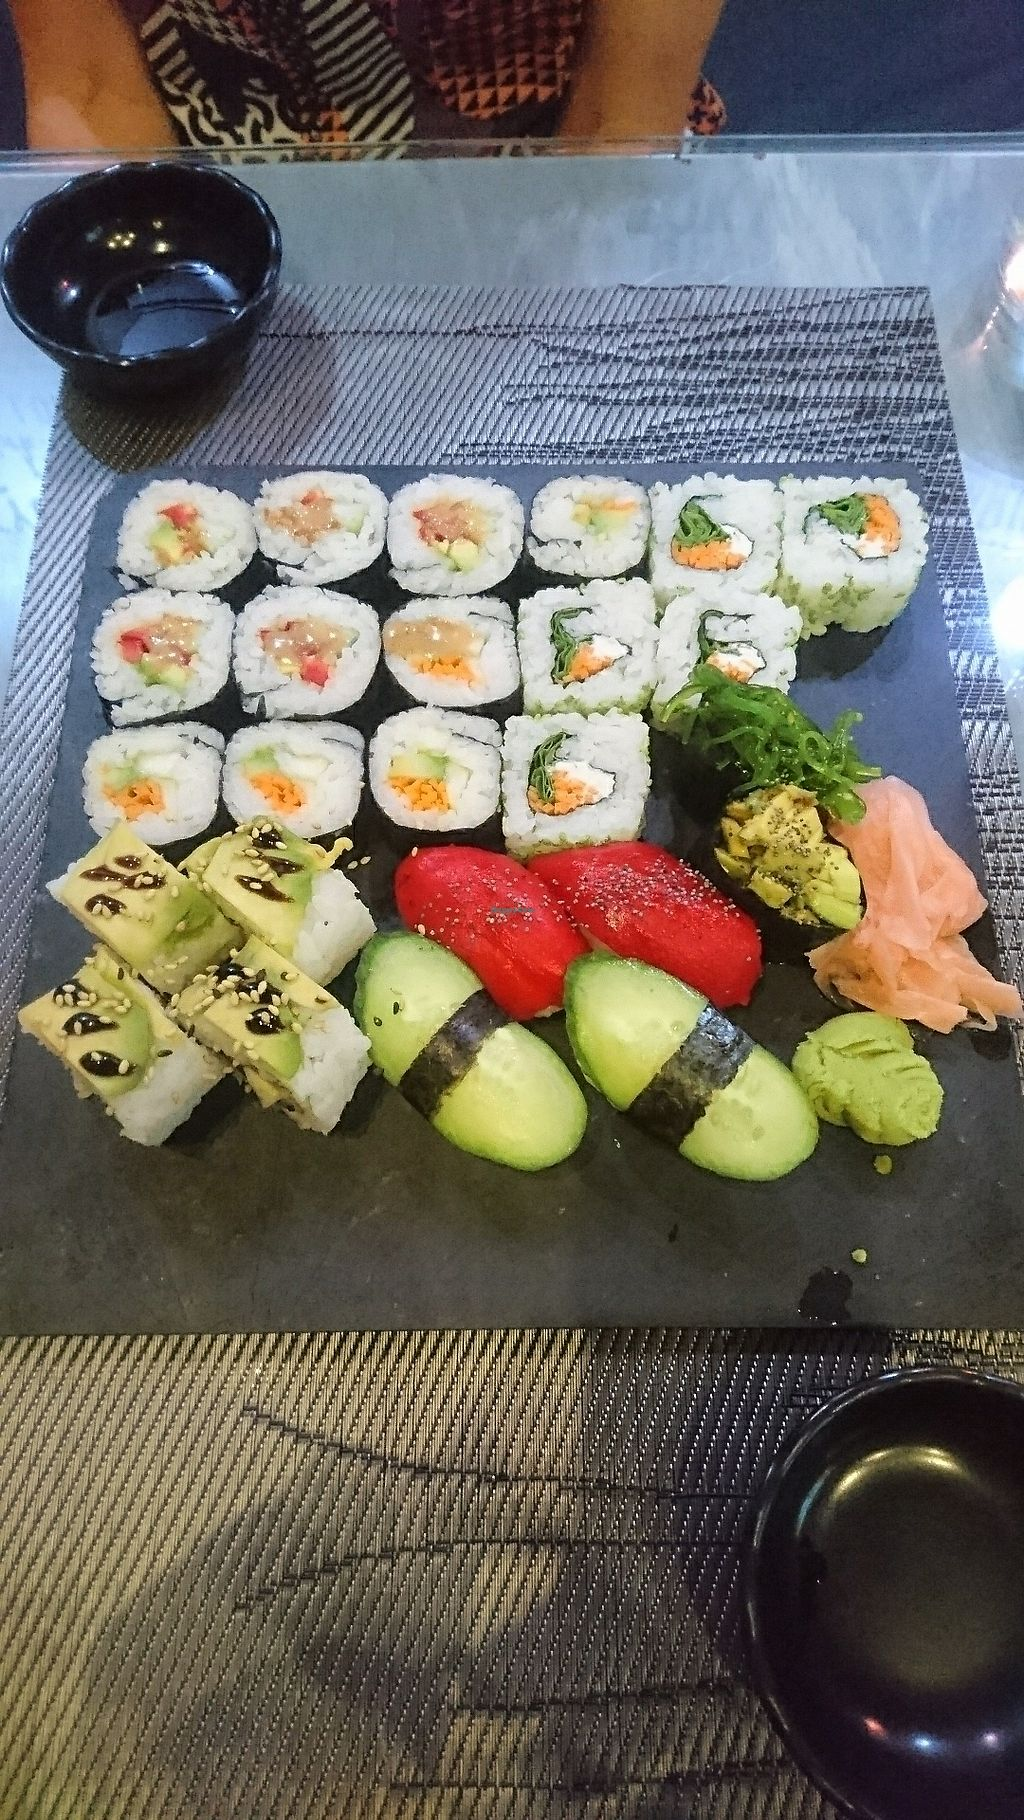 """Photo of Mizushi  by <a href=""""/members/profile/MichaelFry-White"""">MichaelFry-White</a> <br/>Vegan, 25pcs for €18 <br/> August 2, 2017  - <a href='/contact/abuse/image/45248/288047'>Report</a>"""